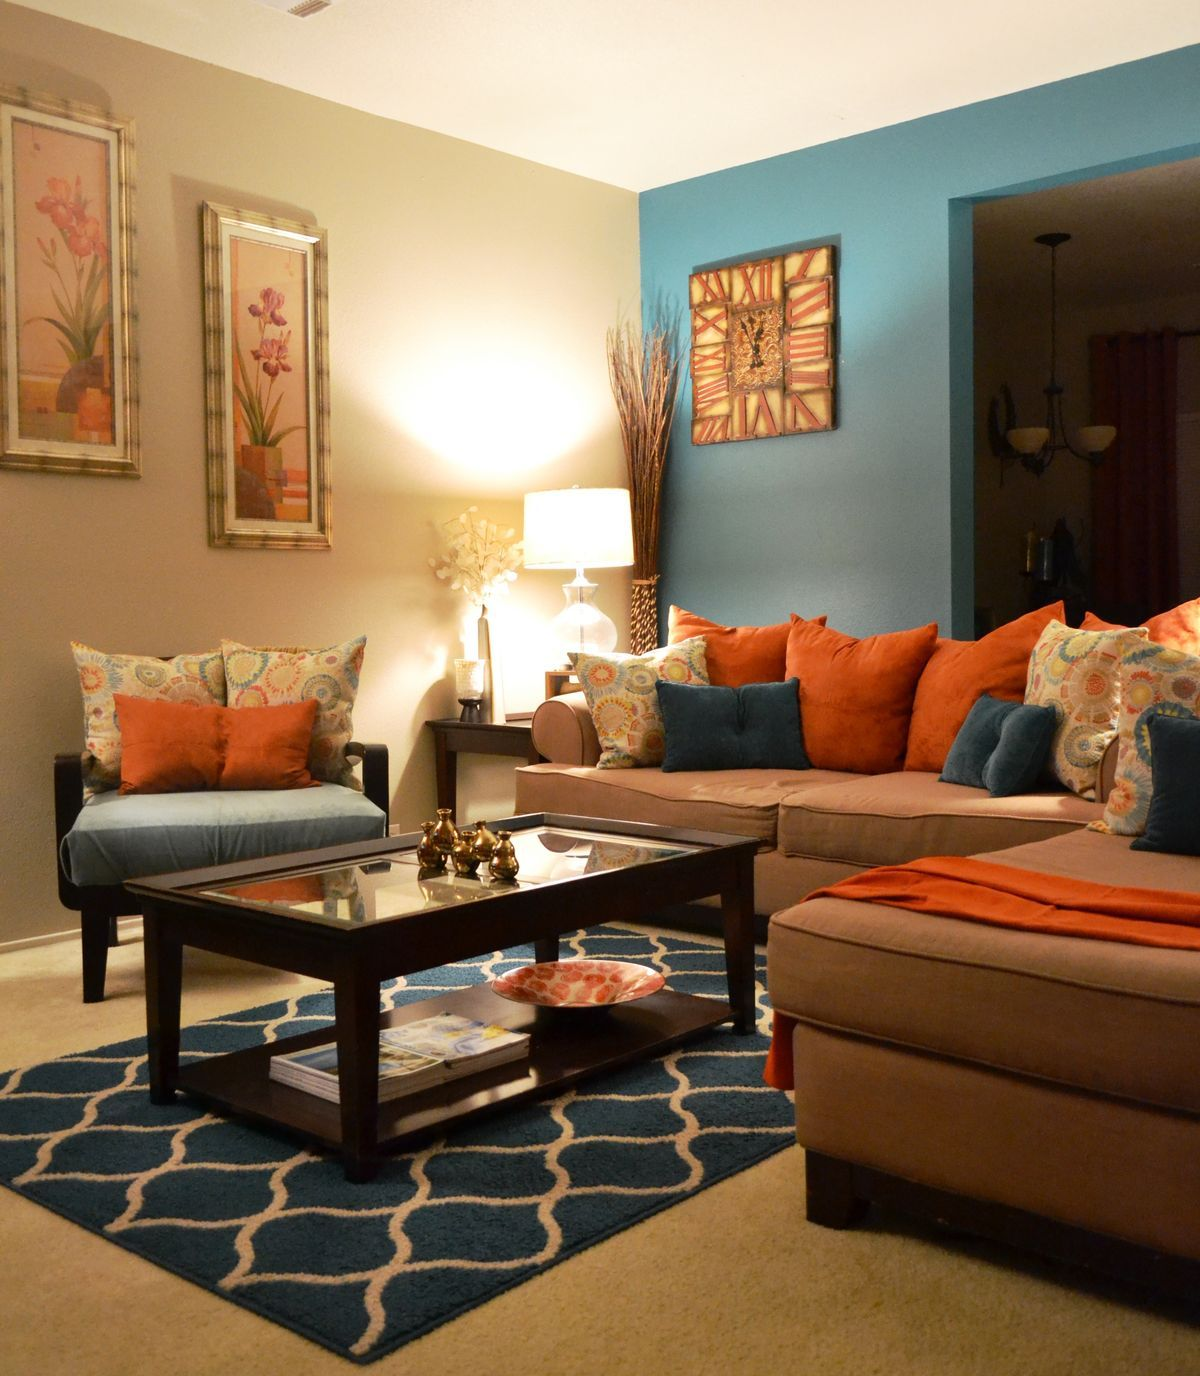 Interior Design Living Room Colors I Like This Color Scheme For The Living Room And Dining Room